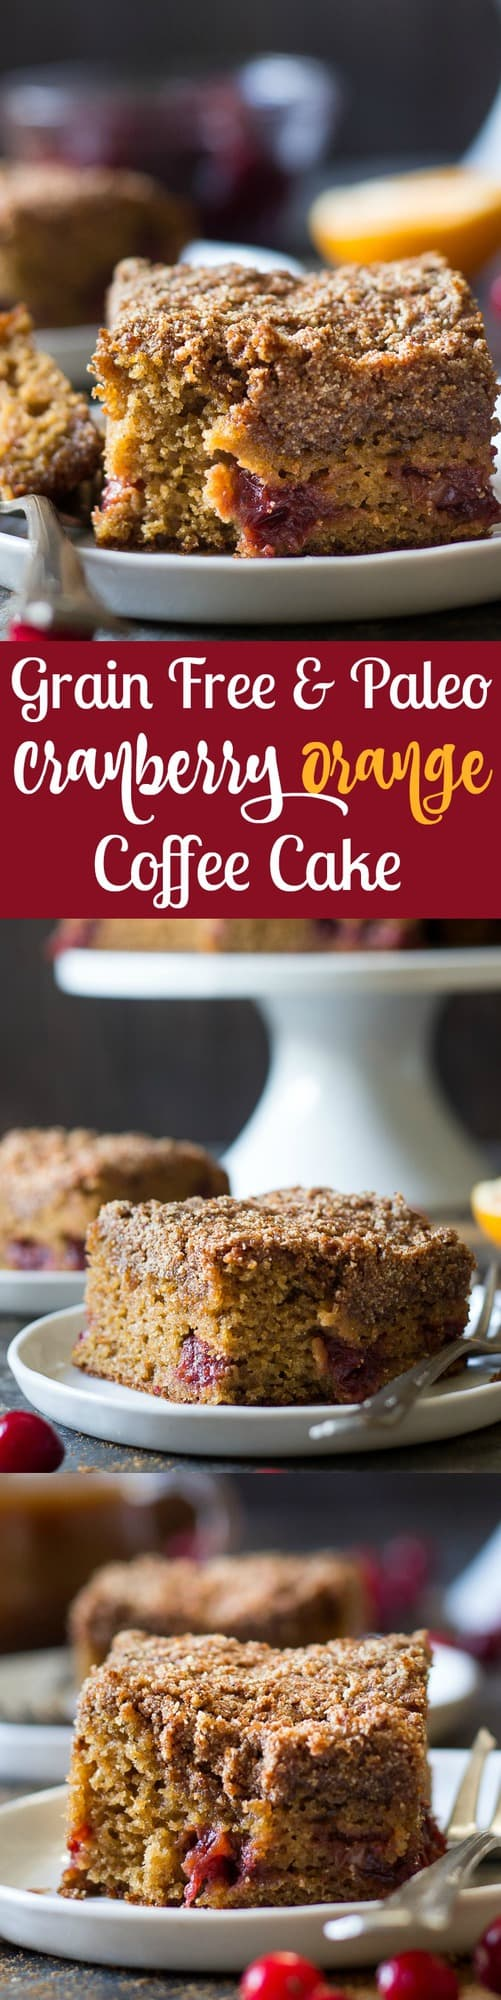 Grain free and Paleo Cranberry Orange Coffee Cake with sweet spices and cinnamon crumb topping.  This Paleo coffee cake is perfect for the holidays and very kid friendly!